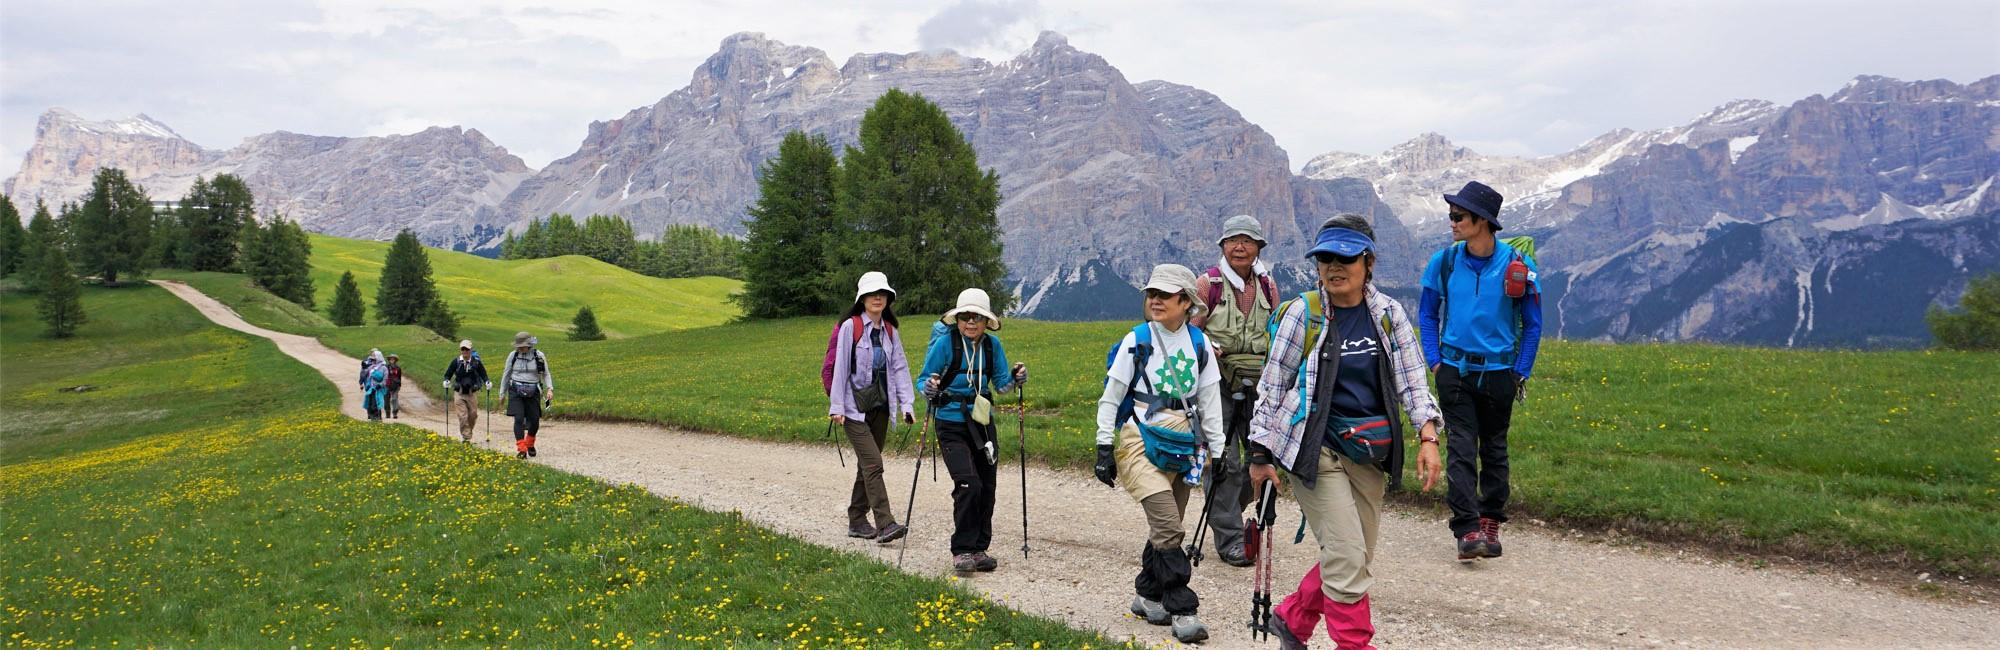 Group of hikers in Dolomites